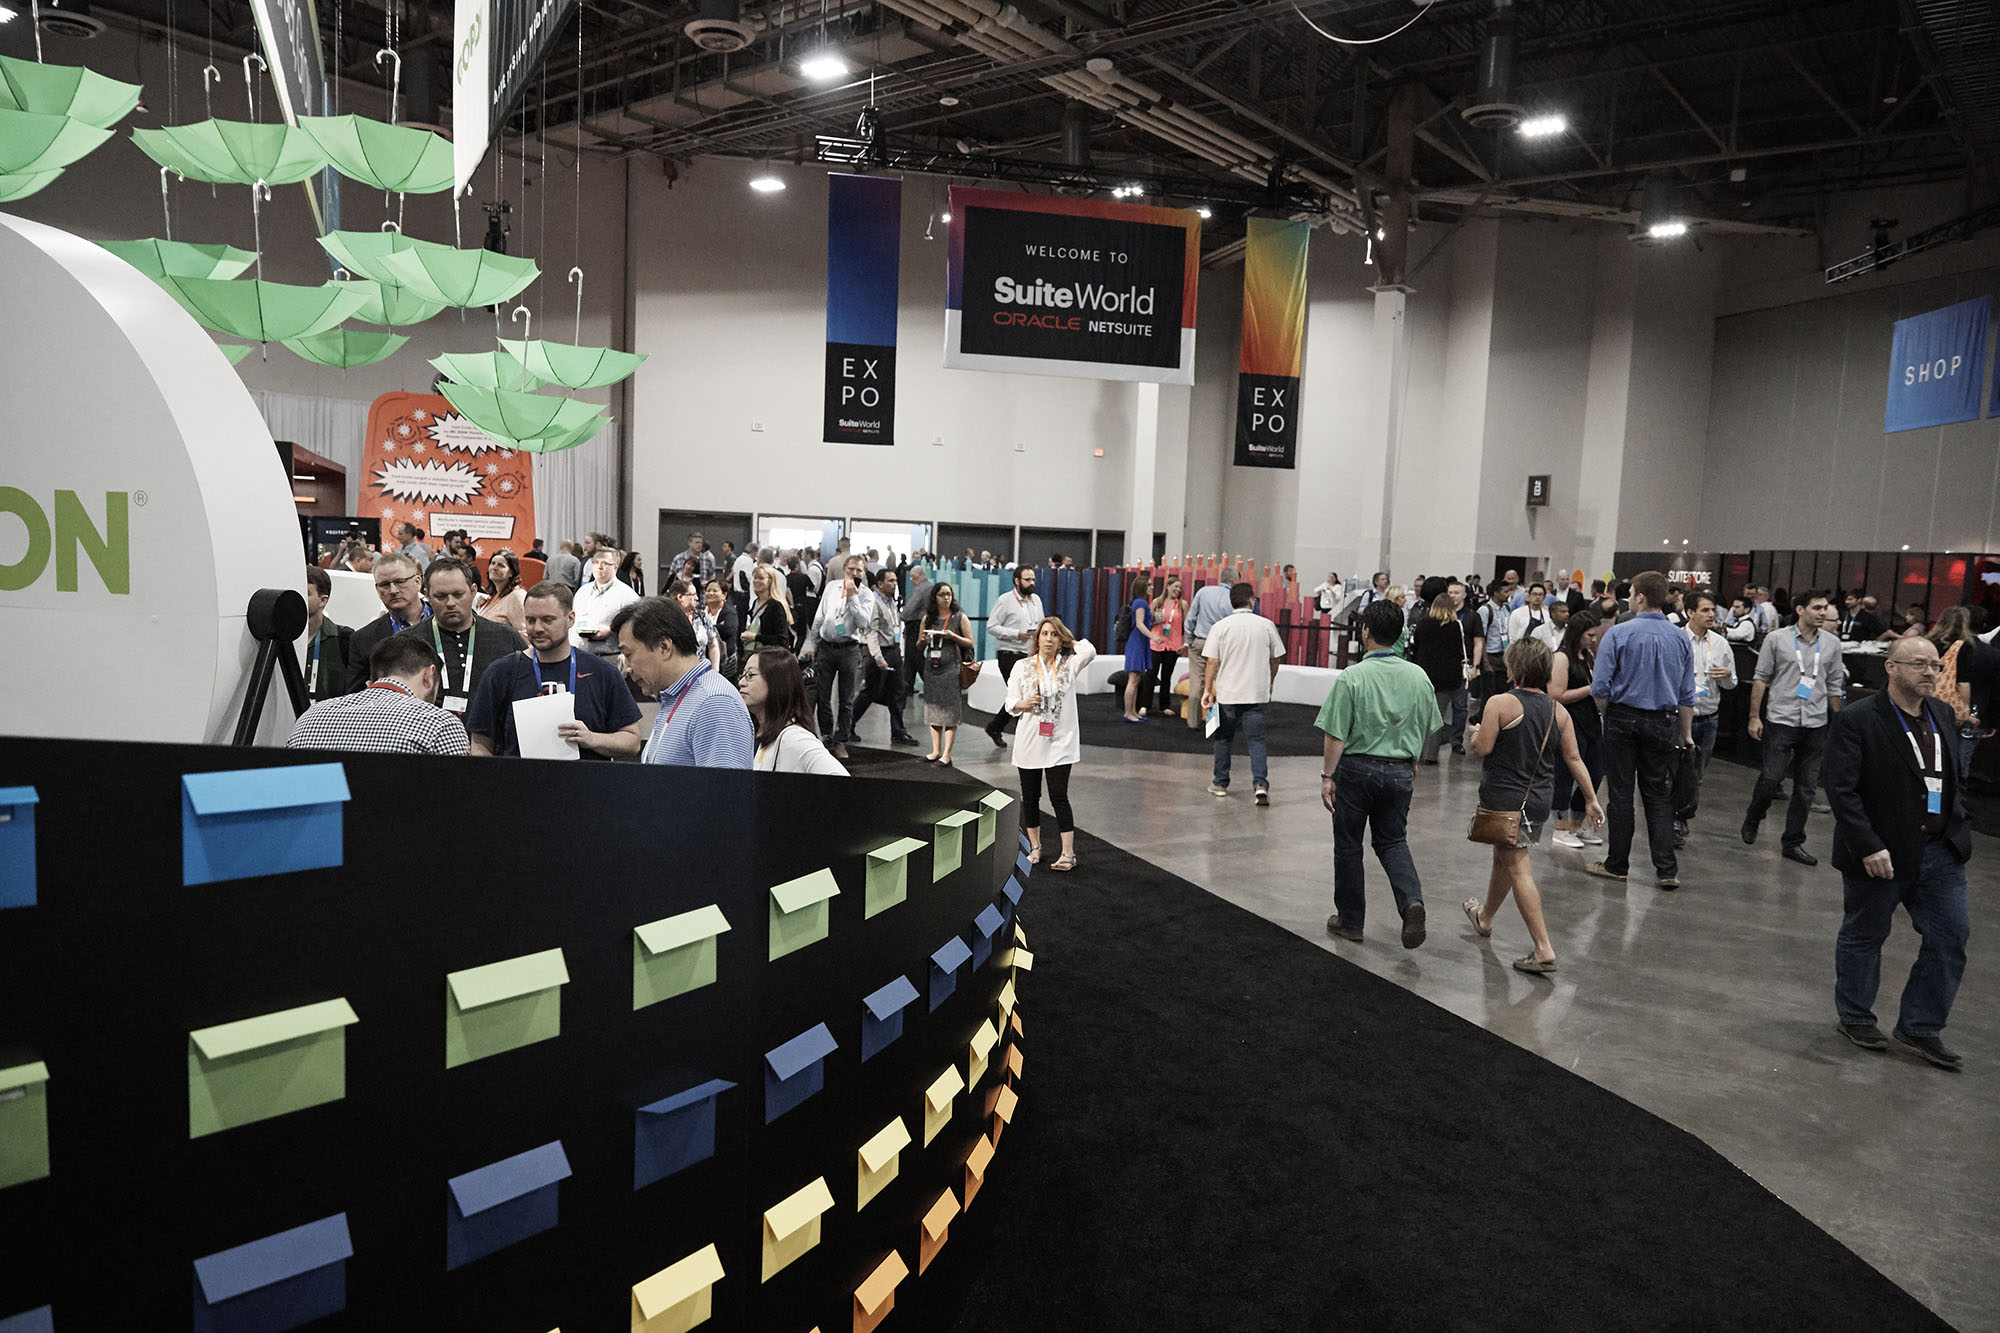 SuiteWorld launches to help businesses think global